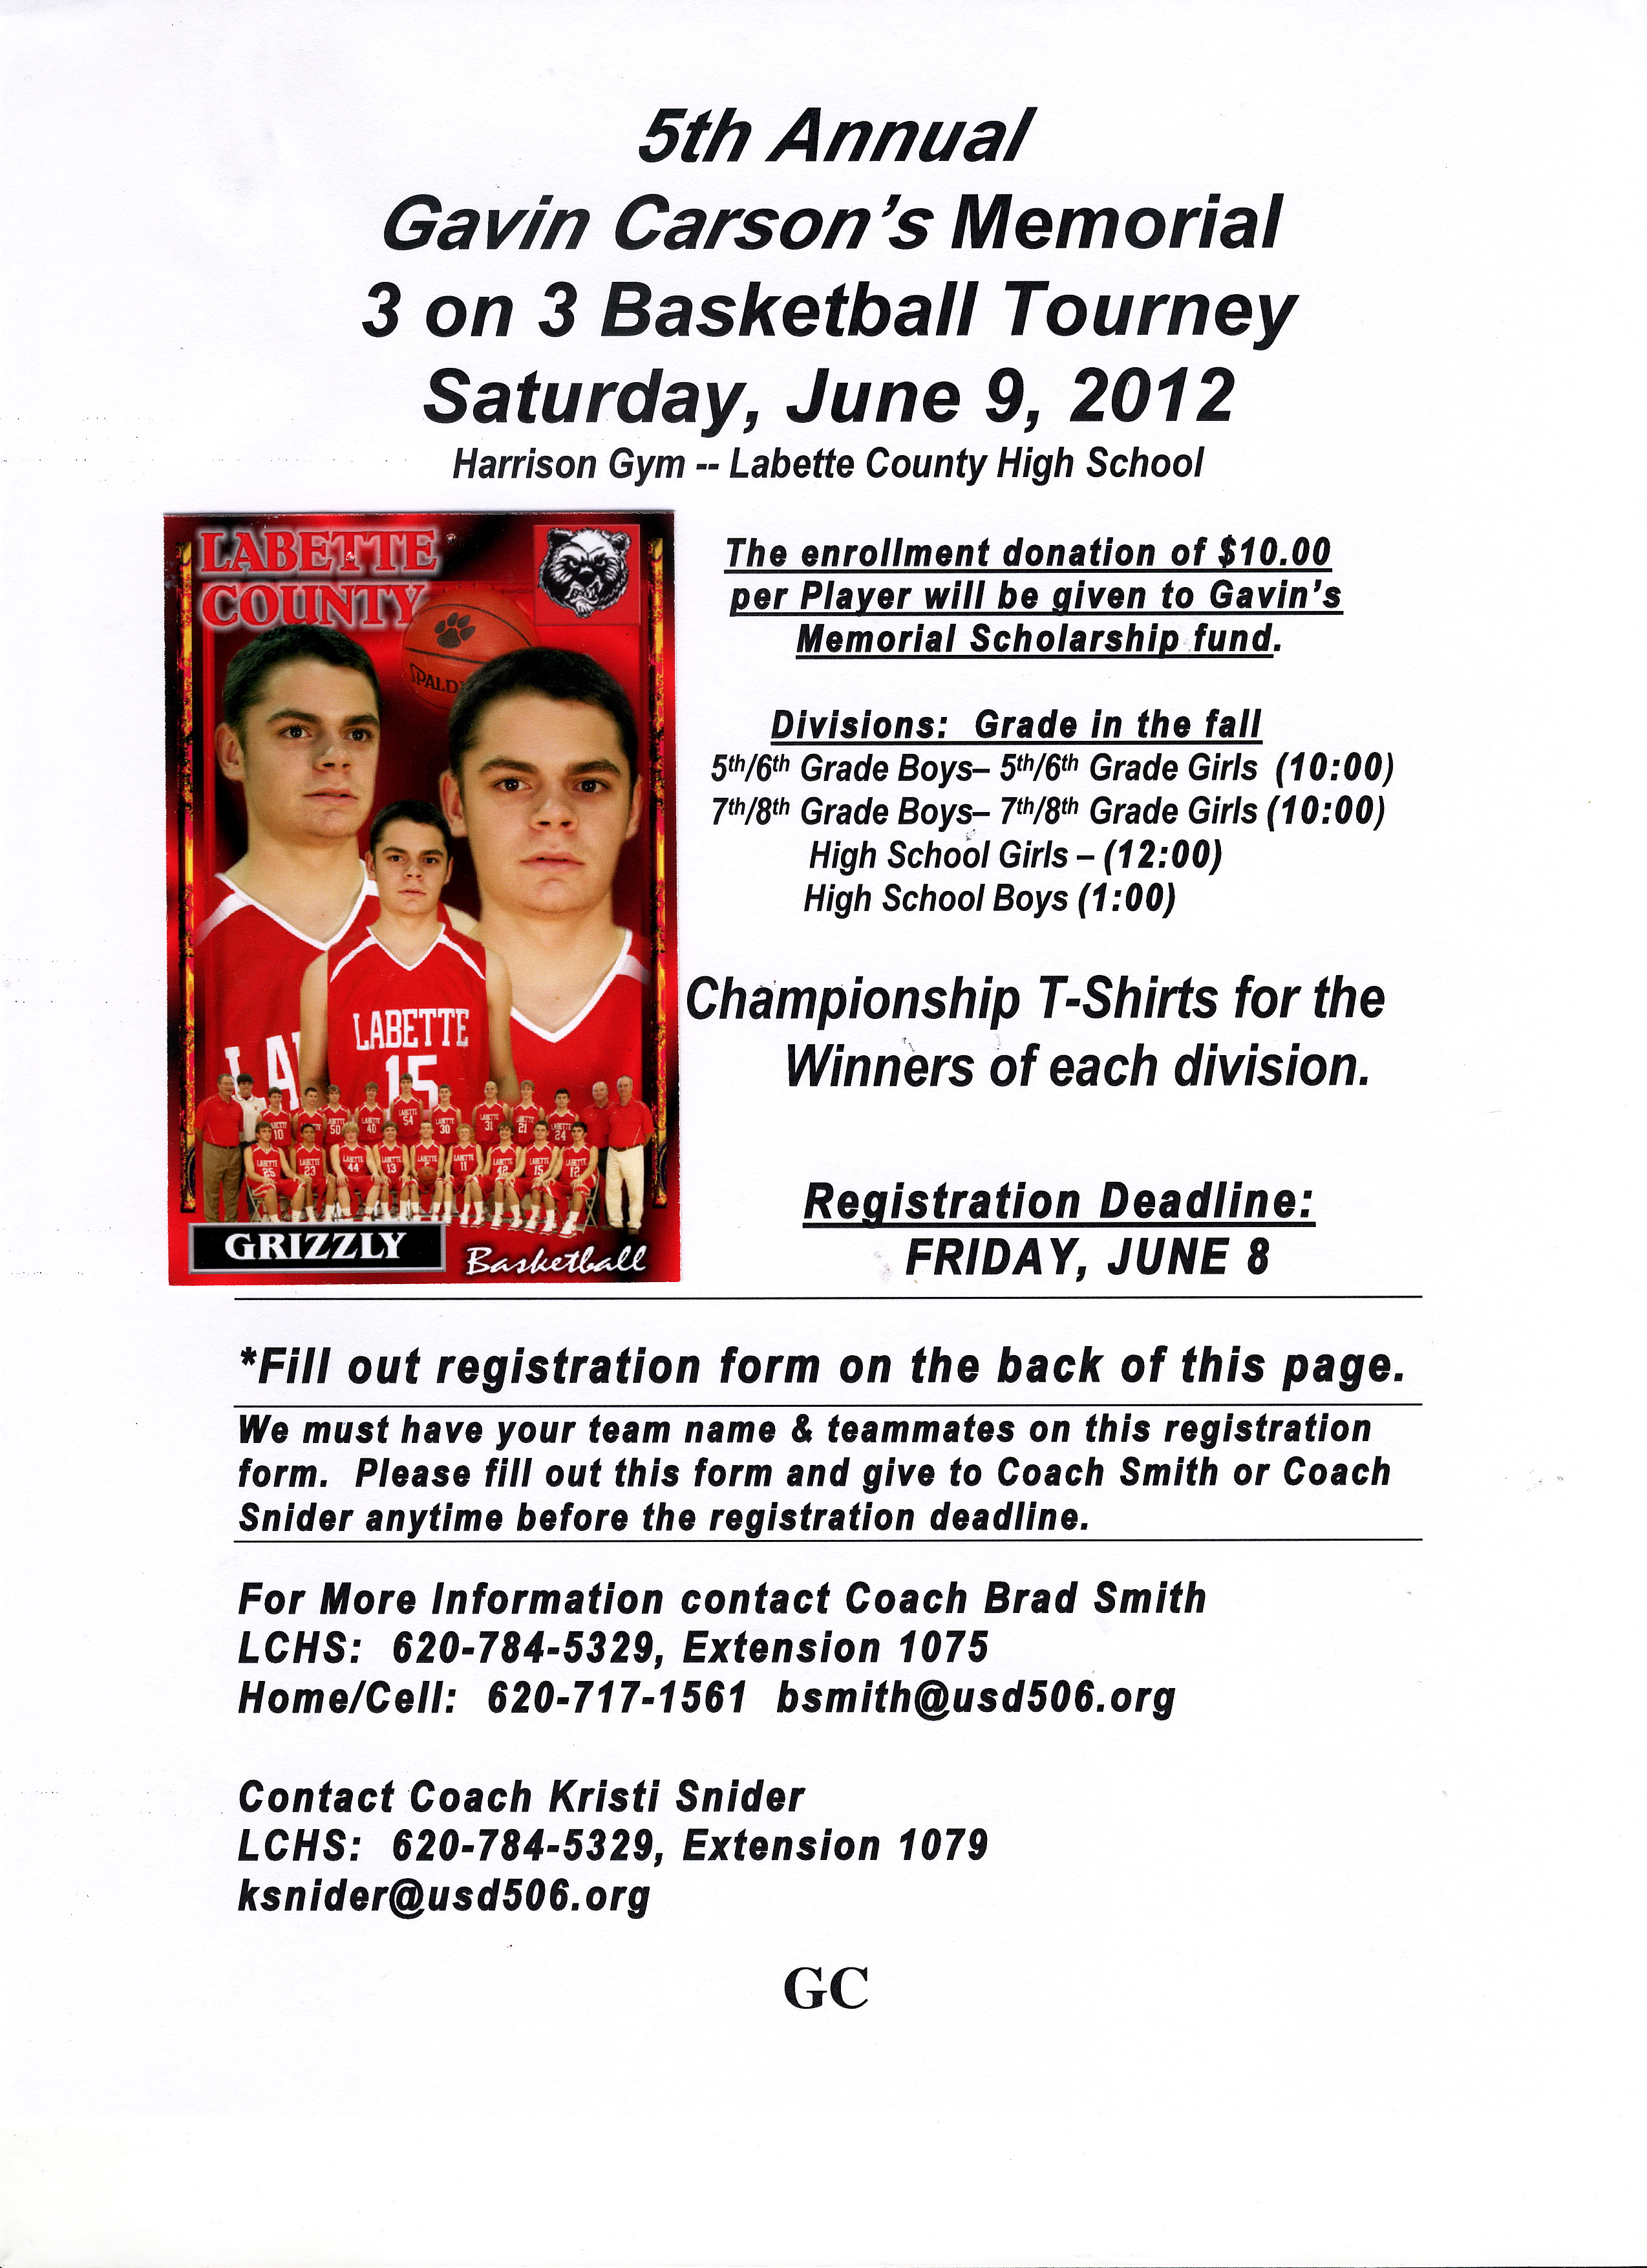 Labette county usd 506 5th annual gavin carsons memorial 3 on 3 5th annual gavin carsons memorial 3 on 3 basketball tournament inserted image registration form pronofoot35fo Gallery